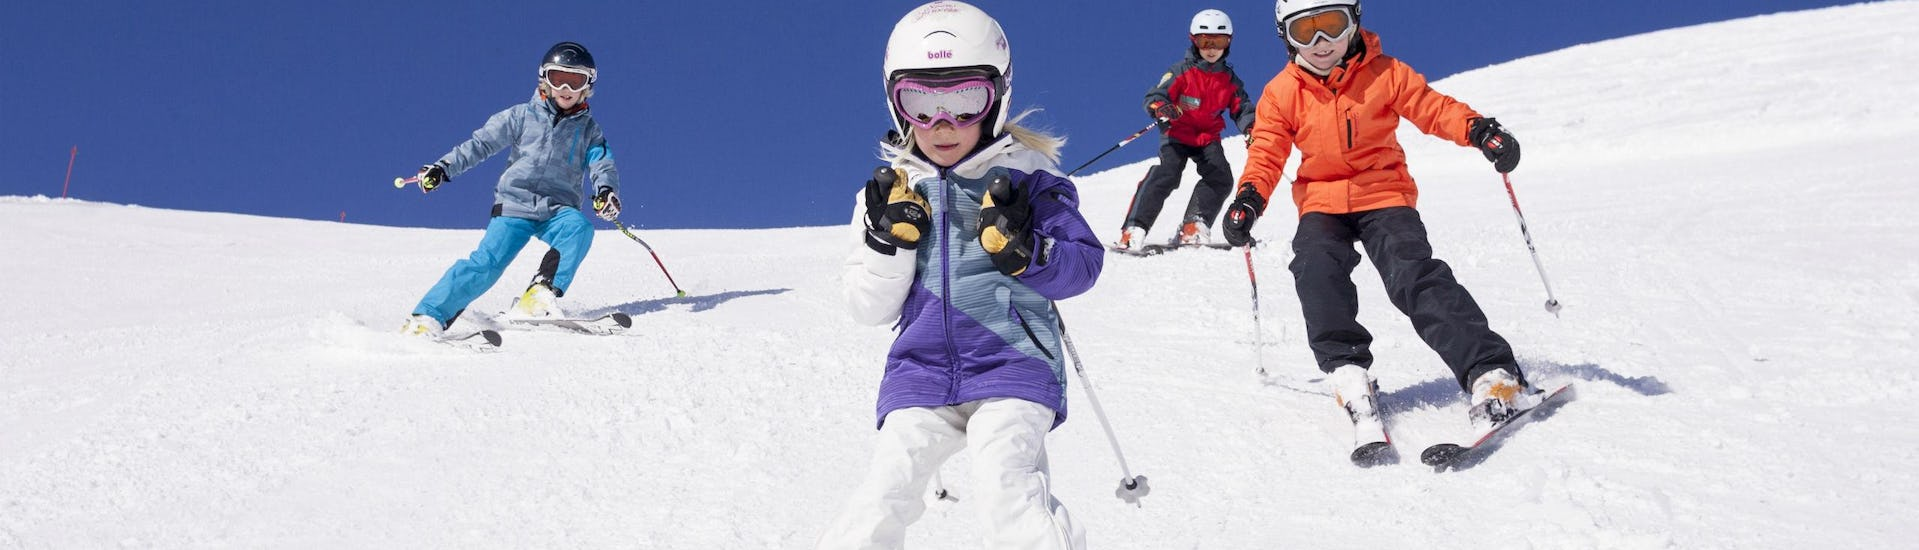 A group of children is enjoying their Private Ski Lessons for Kids - All Levels with the ski school Skischule Zugspitze Grainau in the ski resort of Garmisch-Classic.